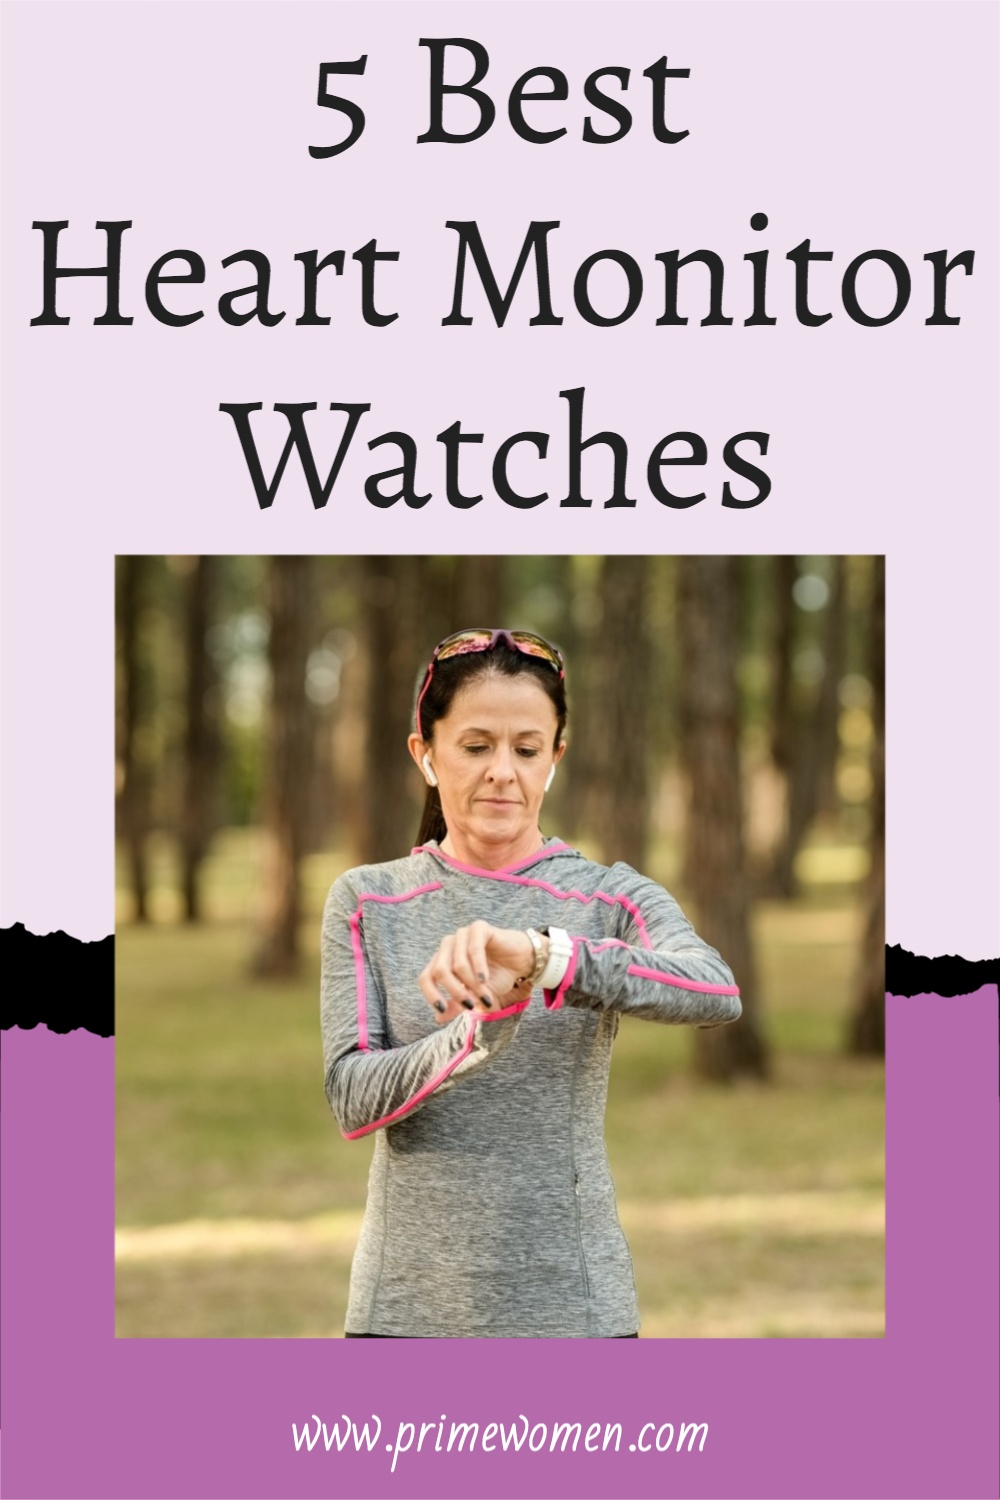 The-5-Best-Heart-Monitor-Watches